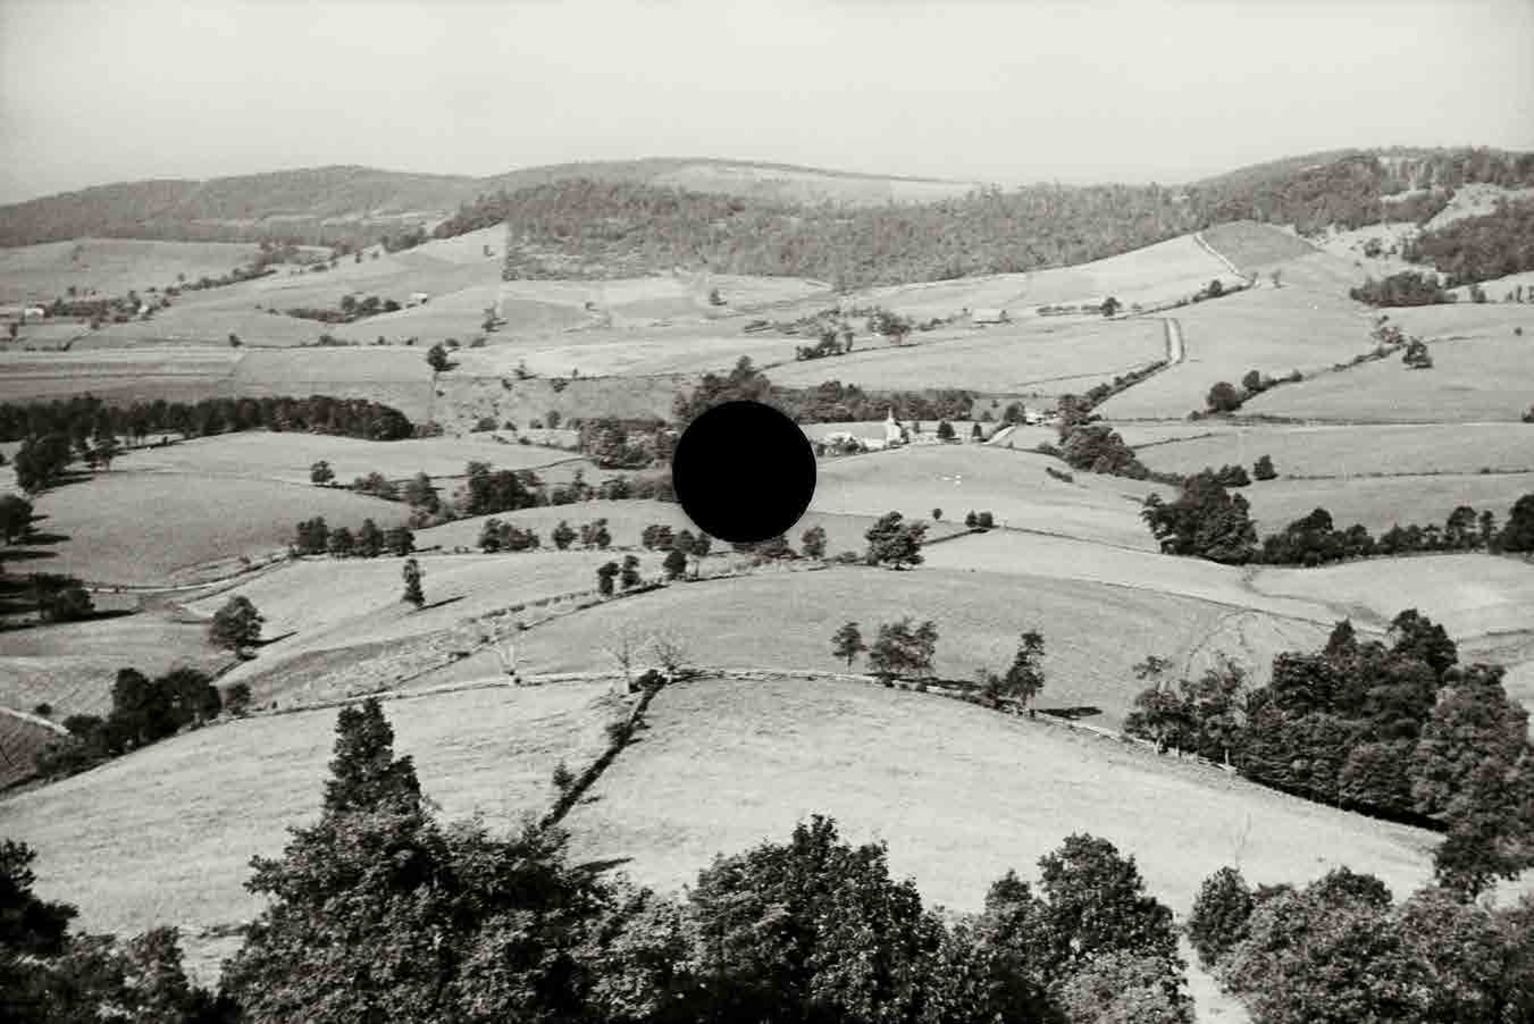 Good farming land, Garrett County, Maryland. 1935. Theodor Jung.